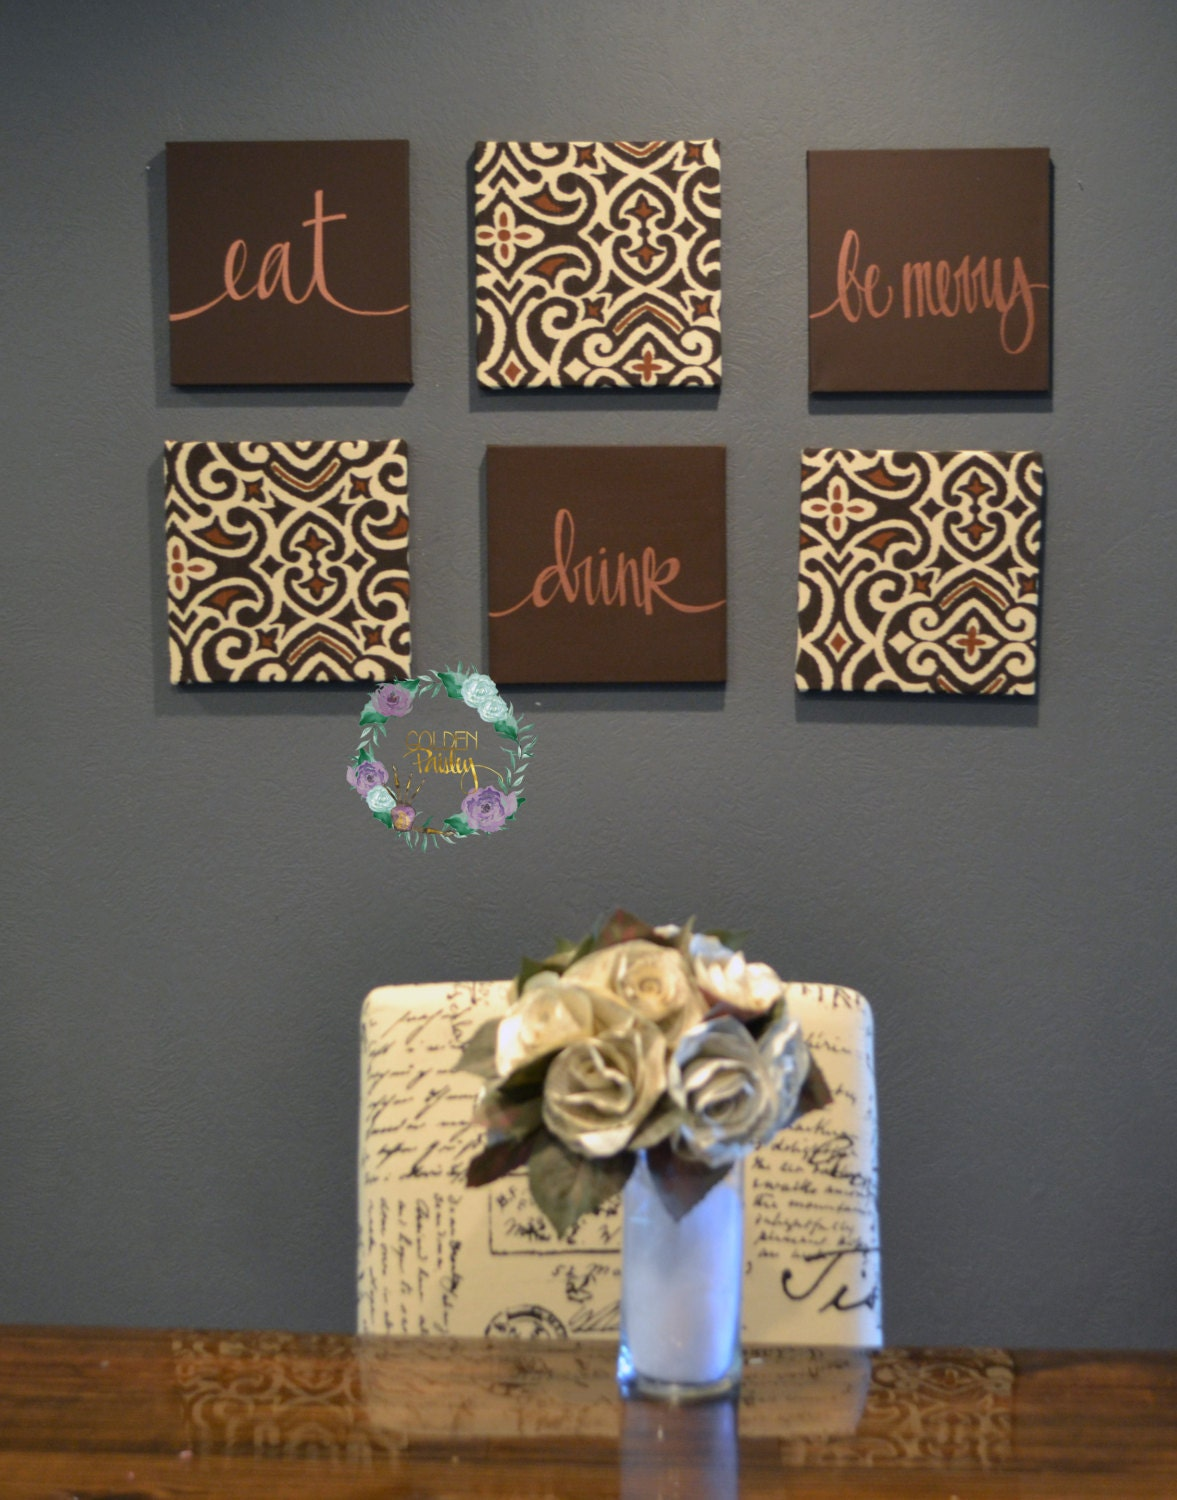 eat drink be merry wall art set custom canvas wall hangings. Black Bedroom Furniture Sets. Home Design Ideas